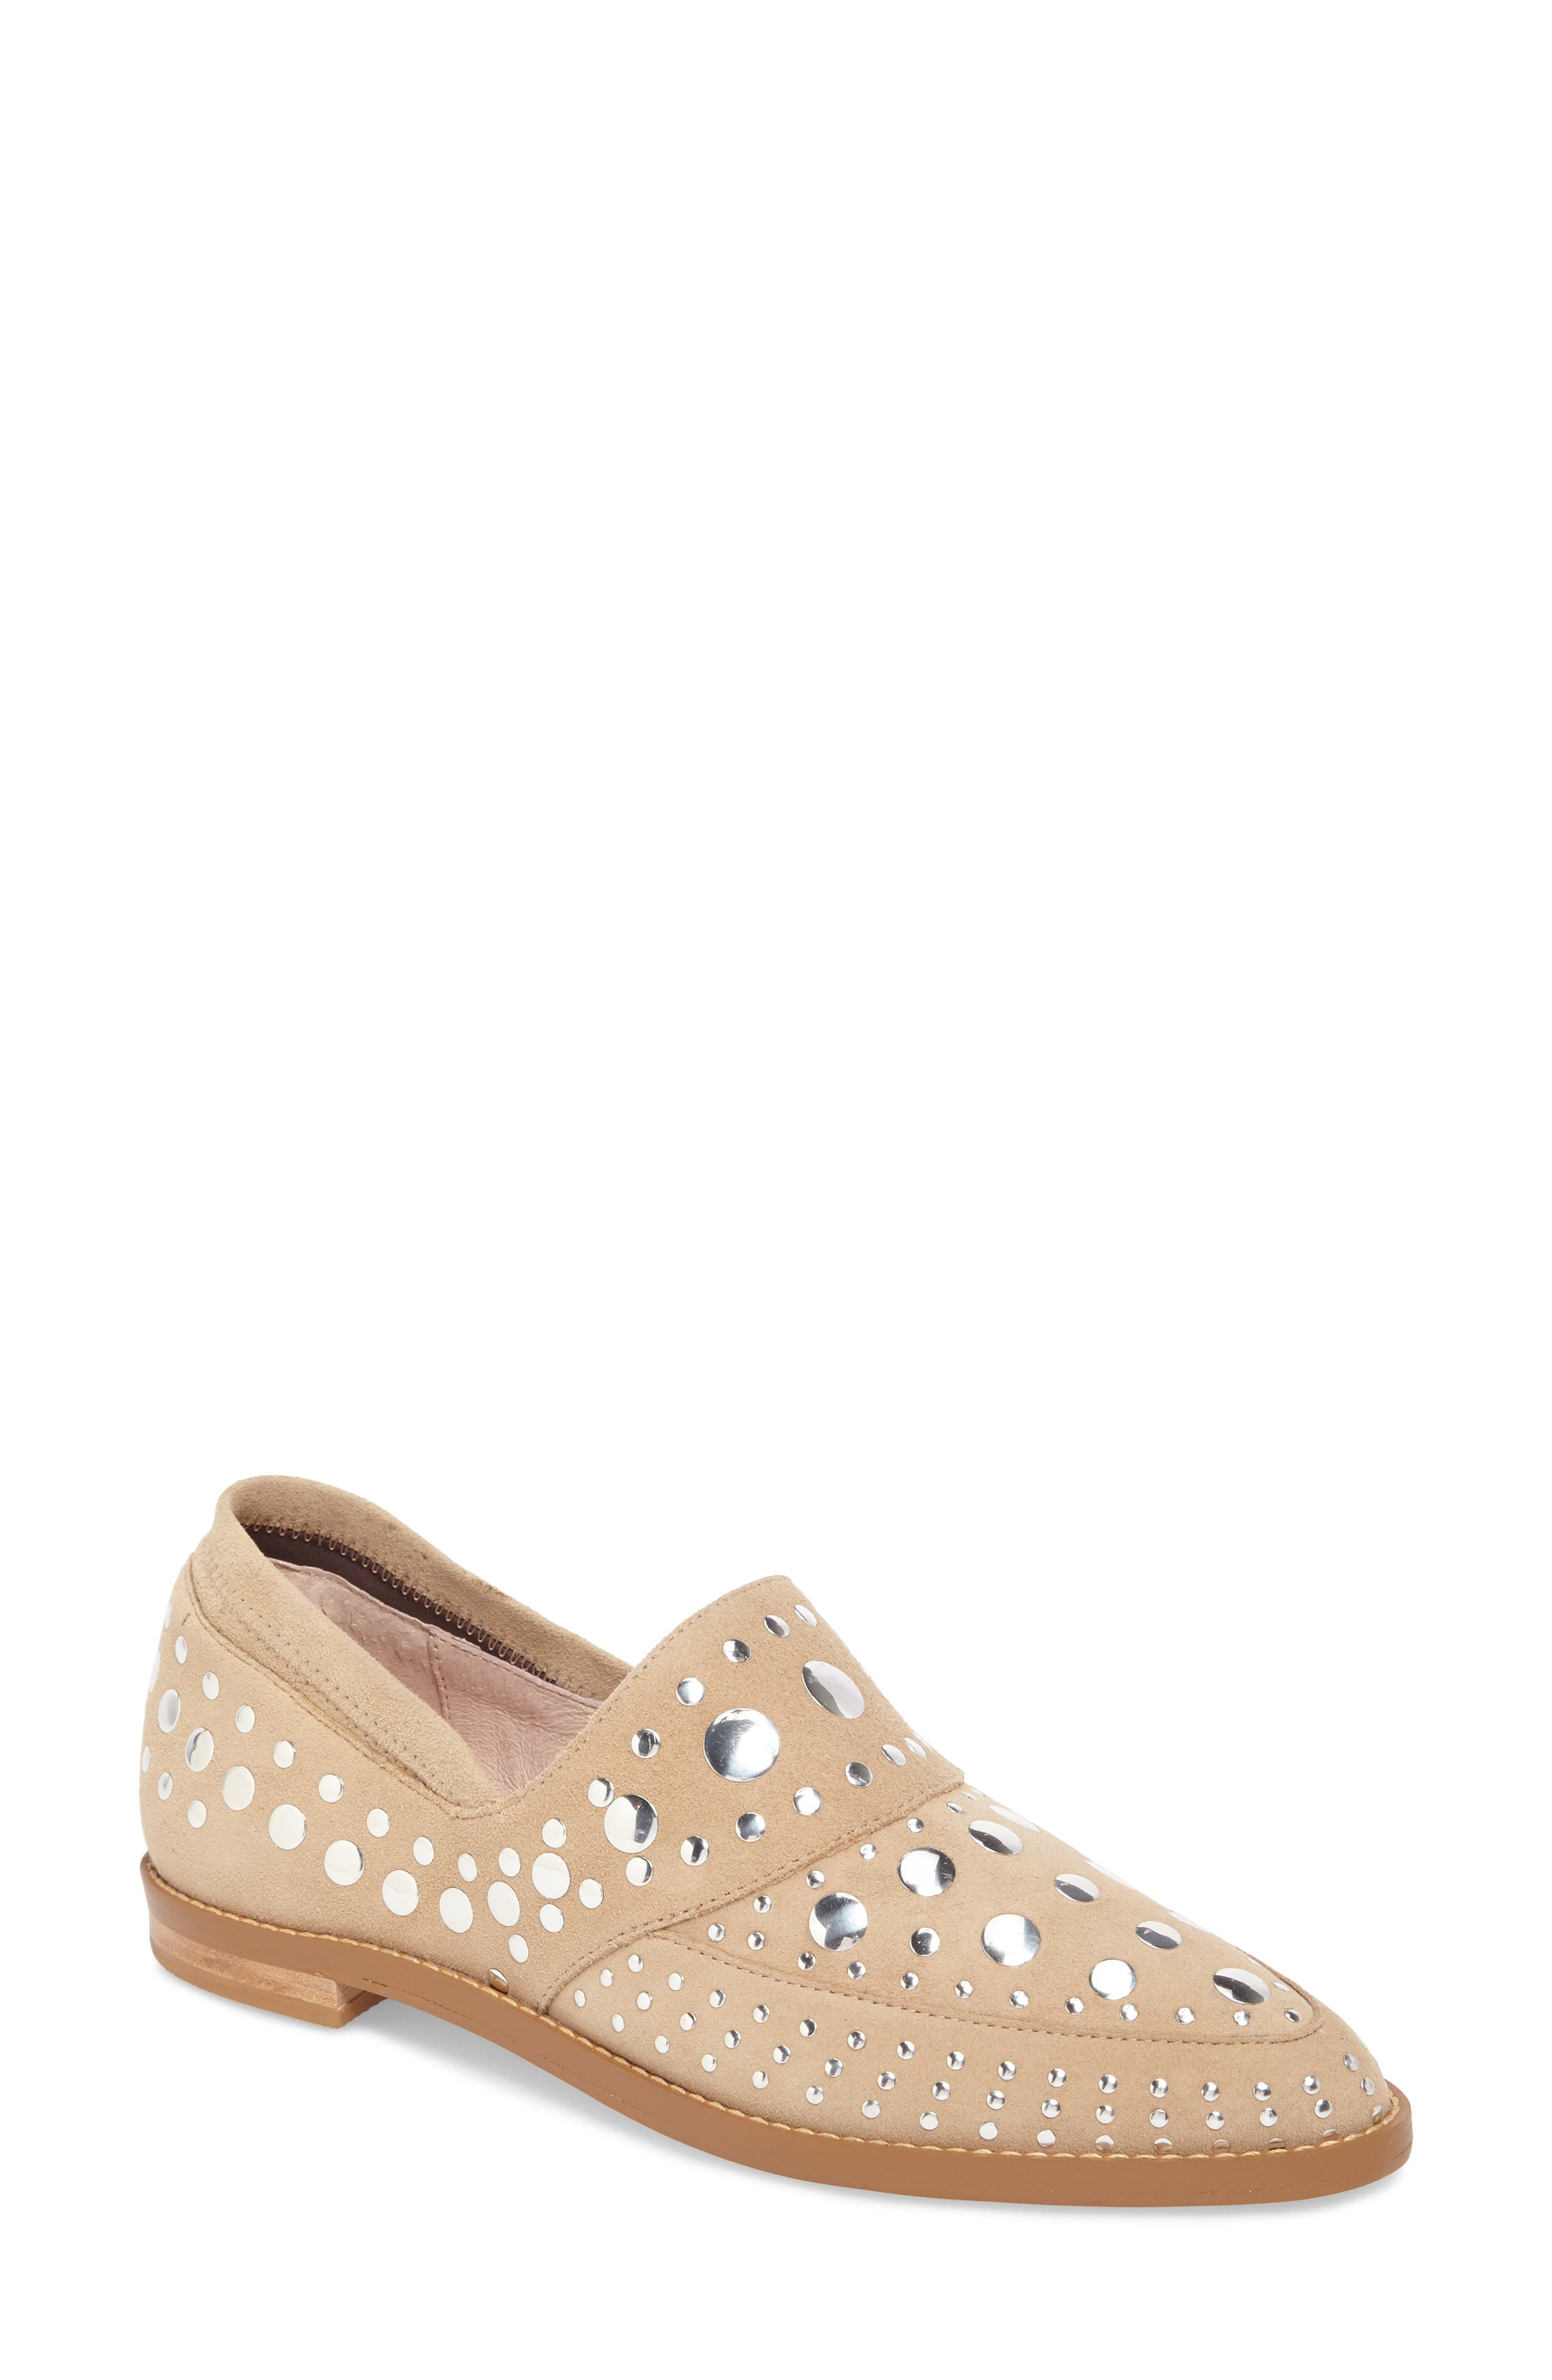 Alternate Image 1 Selected - Cecelia New York Ping Studded Loafer (Women)